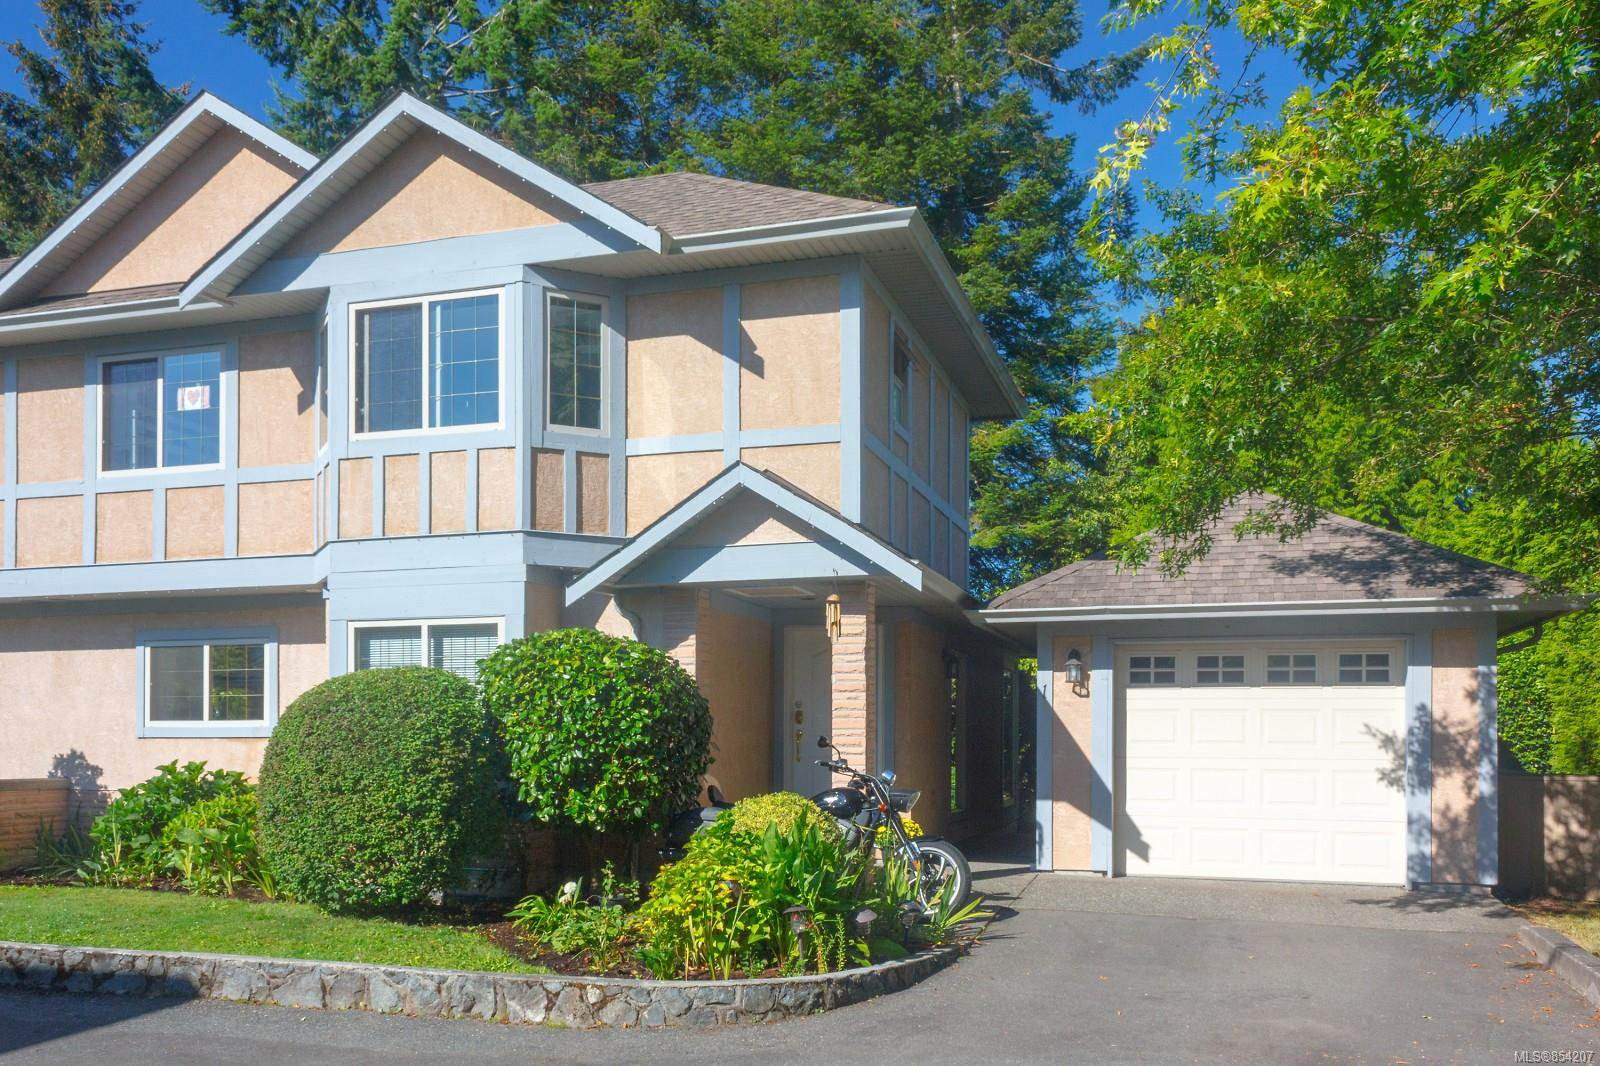 Main Photo: 1 1809 McKenzie Ave in : SE Mt Tolmie Row/Townhouse for sale (Saanich East)  : MLS®# 854207